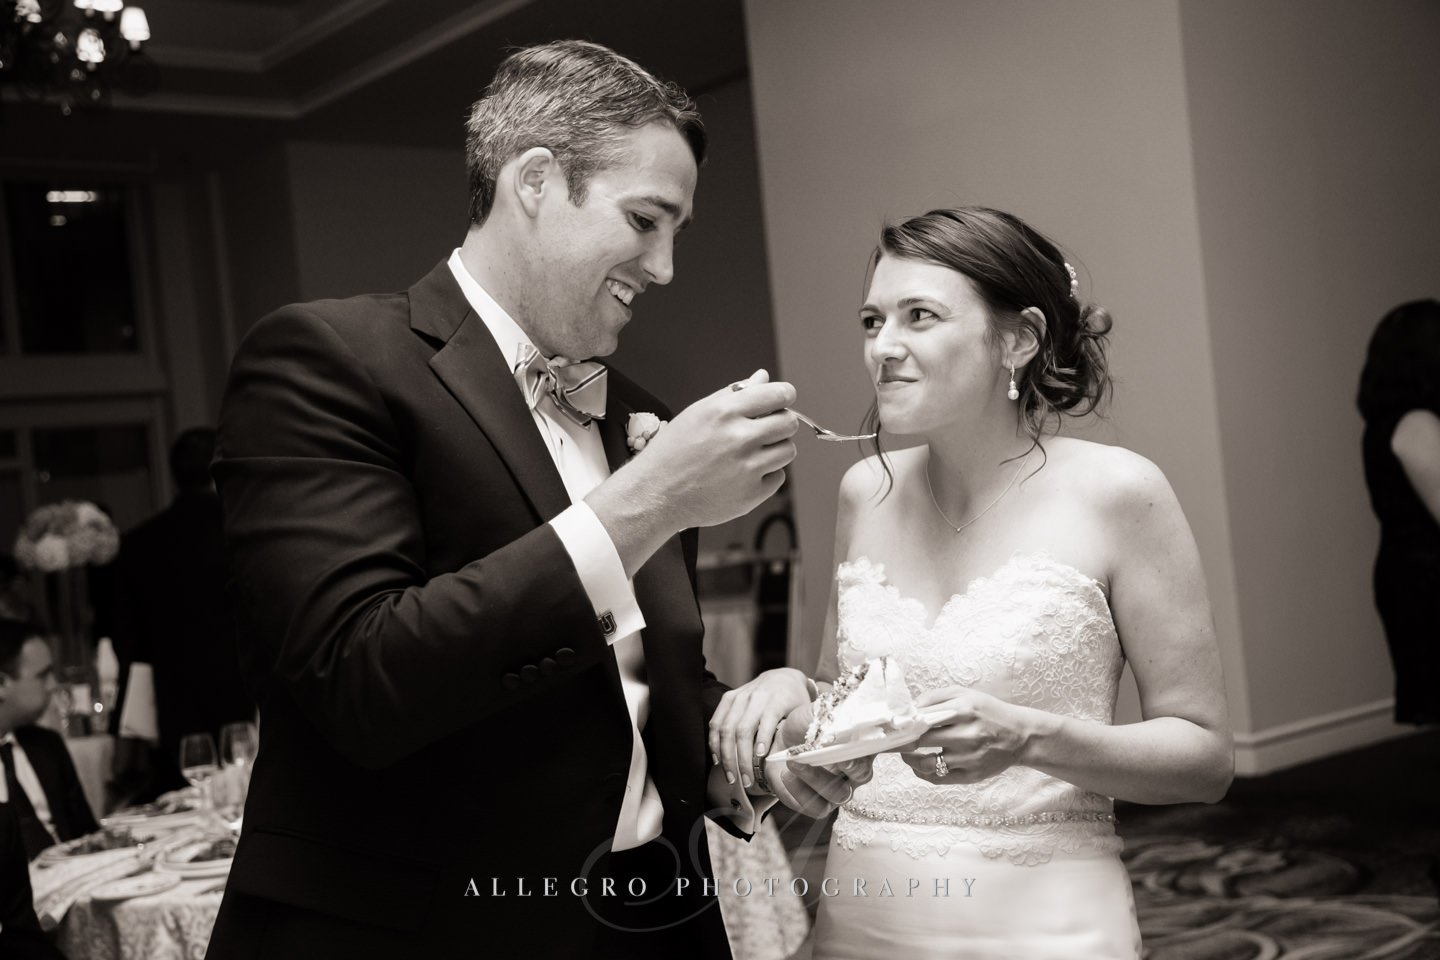 cake  photo by Allegro Photography